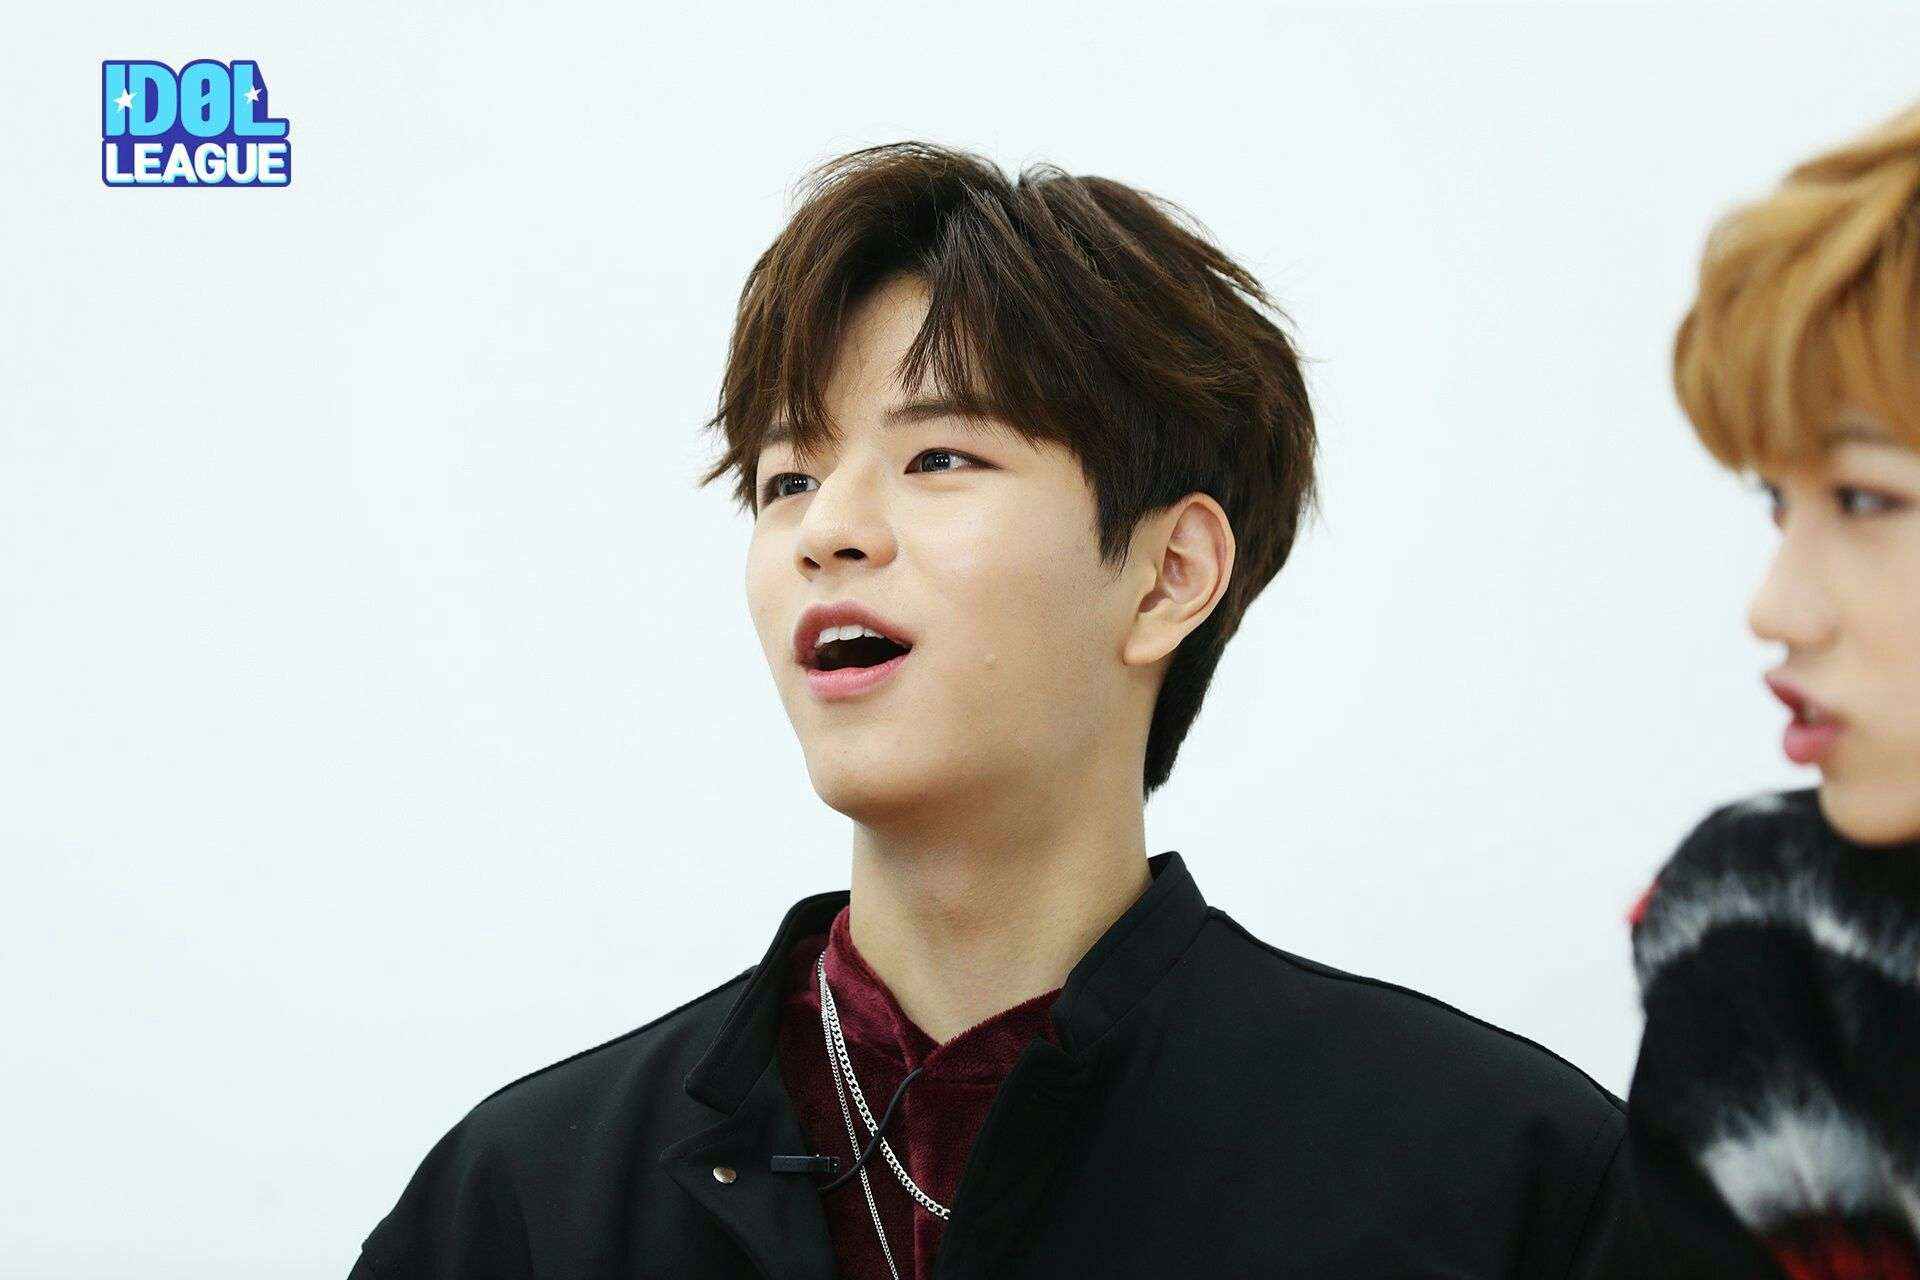 Behinds The Scene Stray Kids On Idol League Crazy Kids Kids Pictures Laughing So Hard